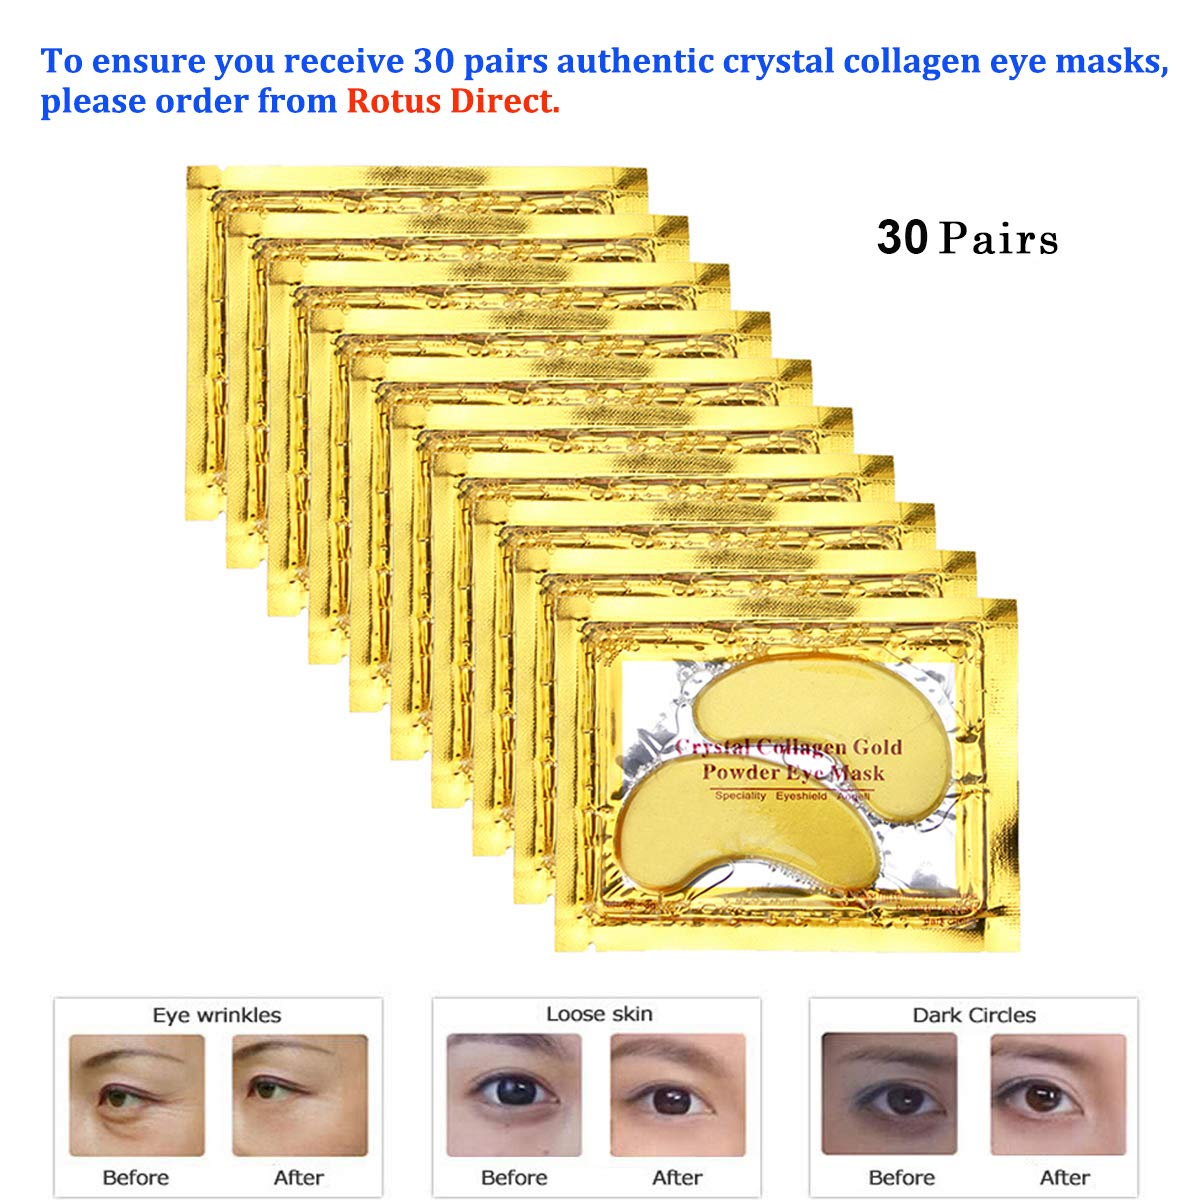 Rotus Gold Eye Mask Power Crystal Gel Collagen Masks, Great For Anti Aging, Dark Circles & Puffiness, 30 Pairs